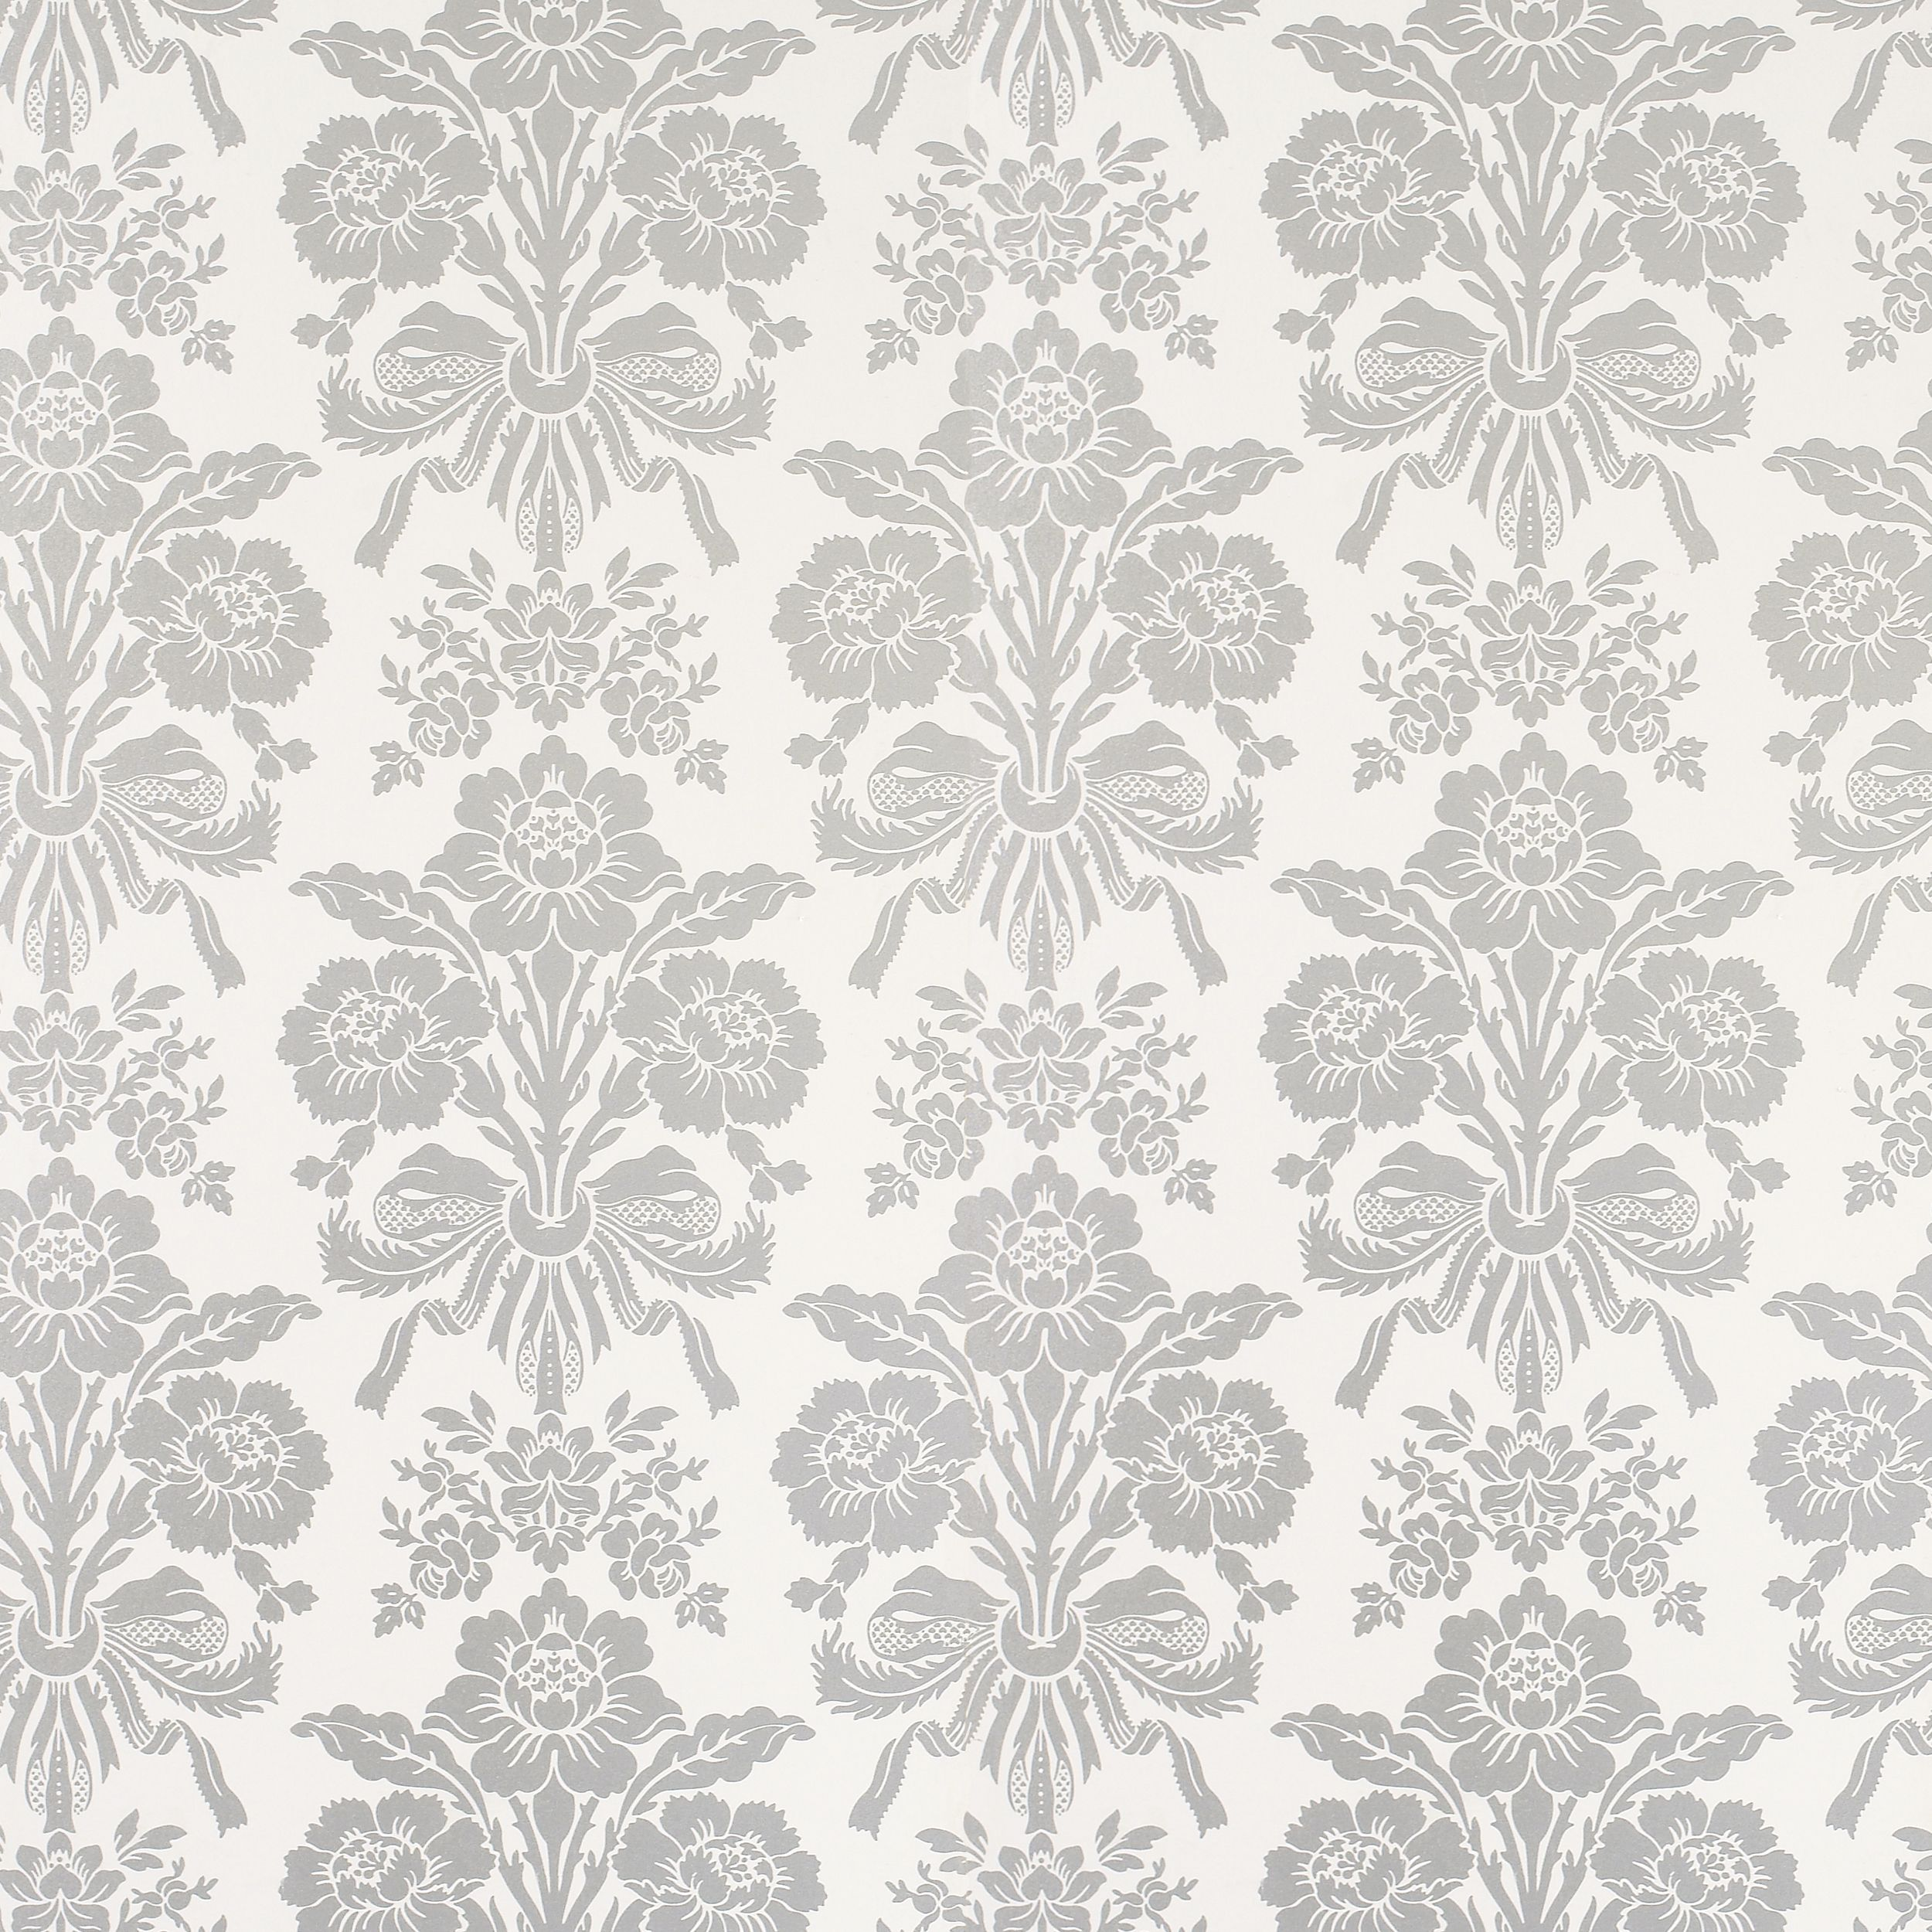 Tatton Silver Damask Wallpaper at LAURA ASHLEY Paper